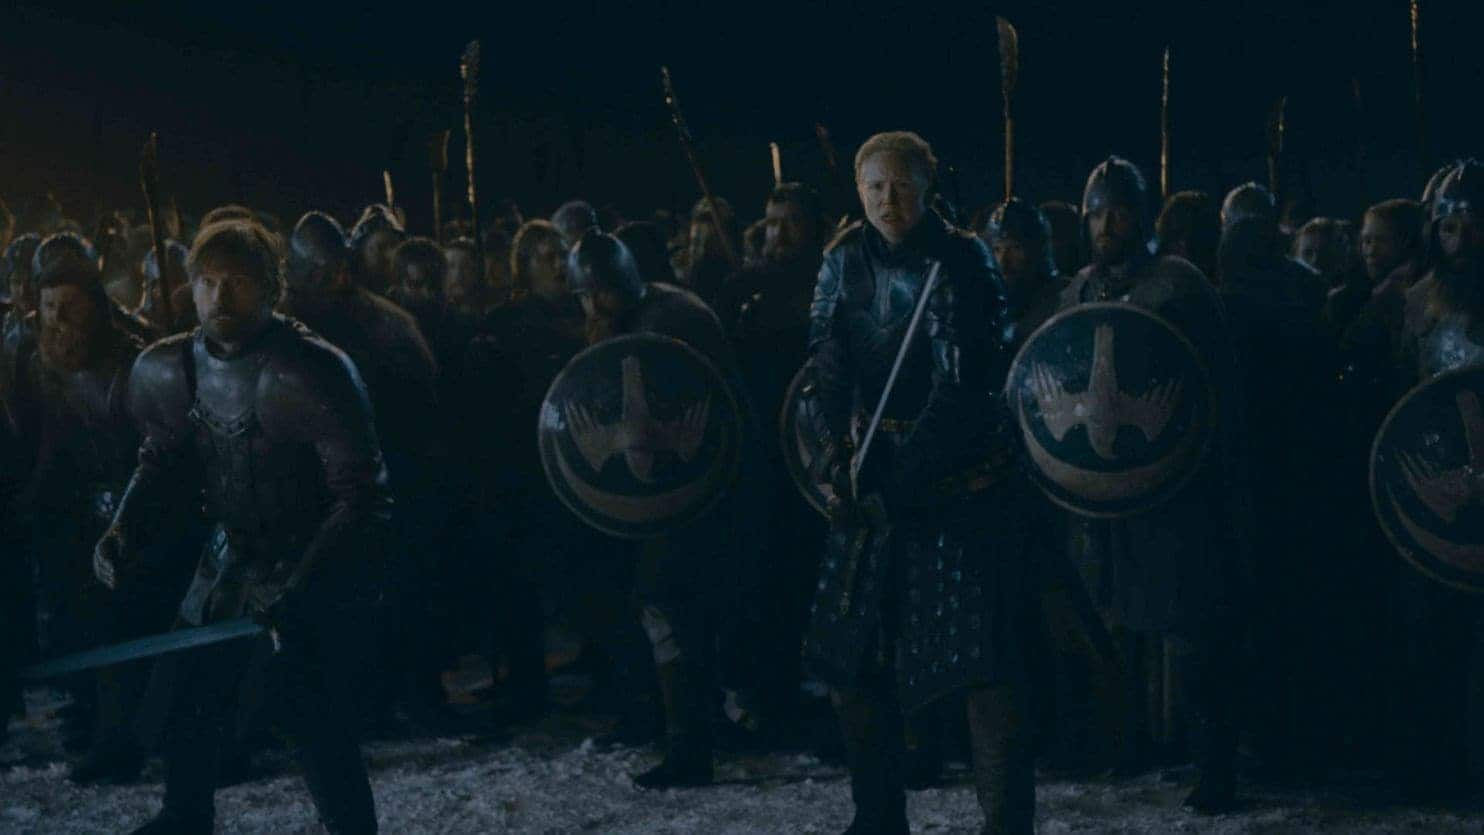 Game of Thrones Season 8 Episode 3 Review: Forget Battle Of Bastards Or Red Wedding, This Is THE EPISODE That Will Haunt You Forever